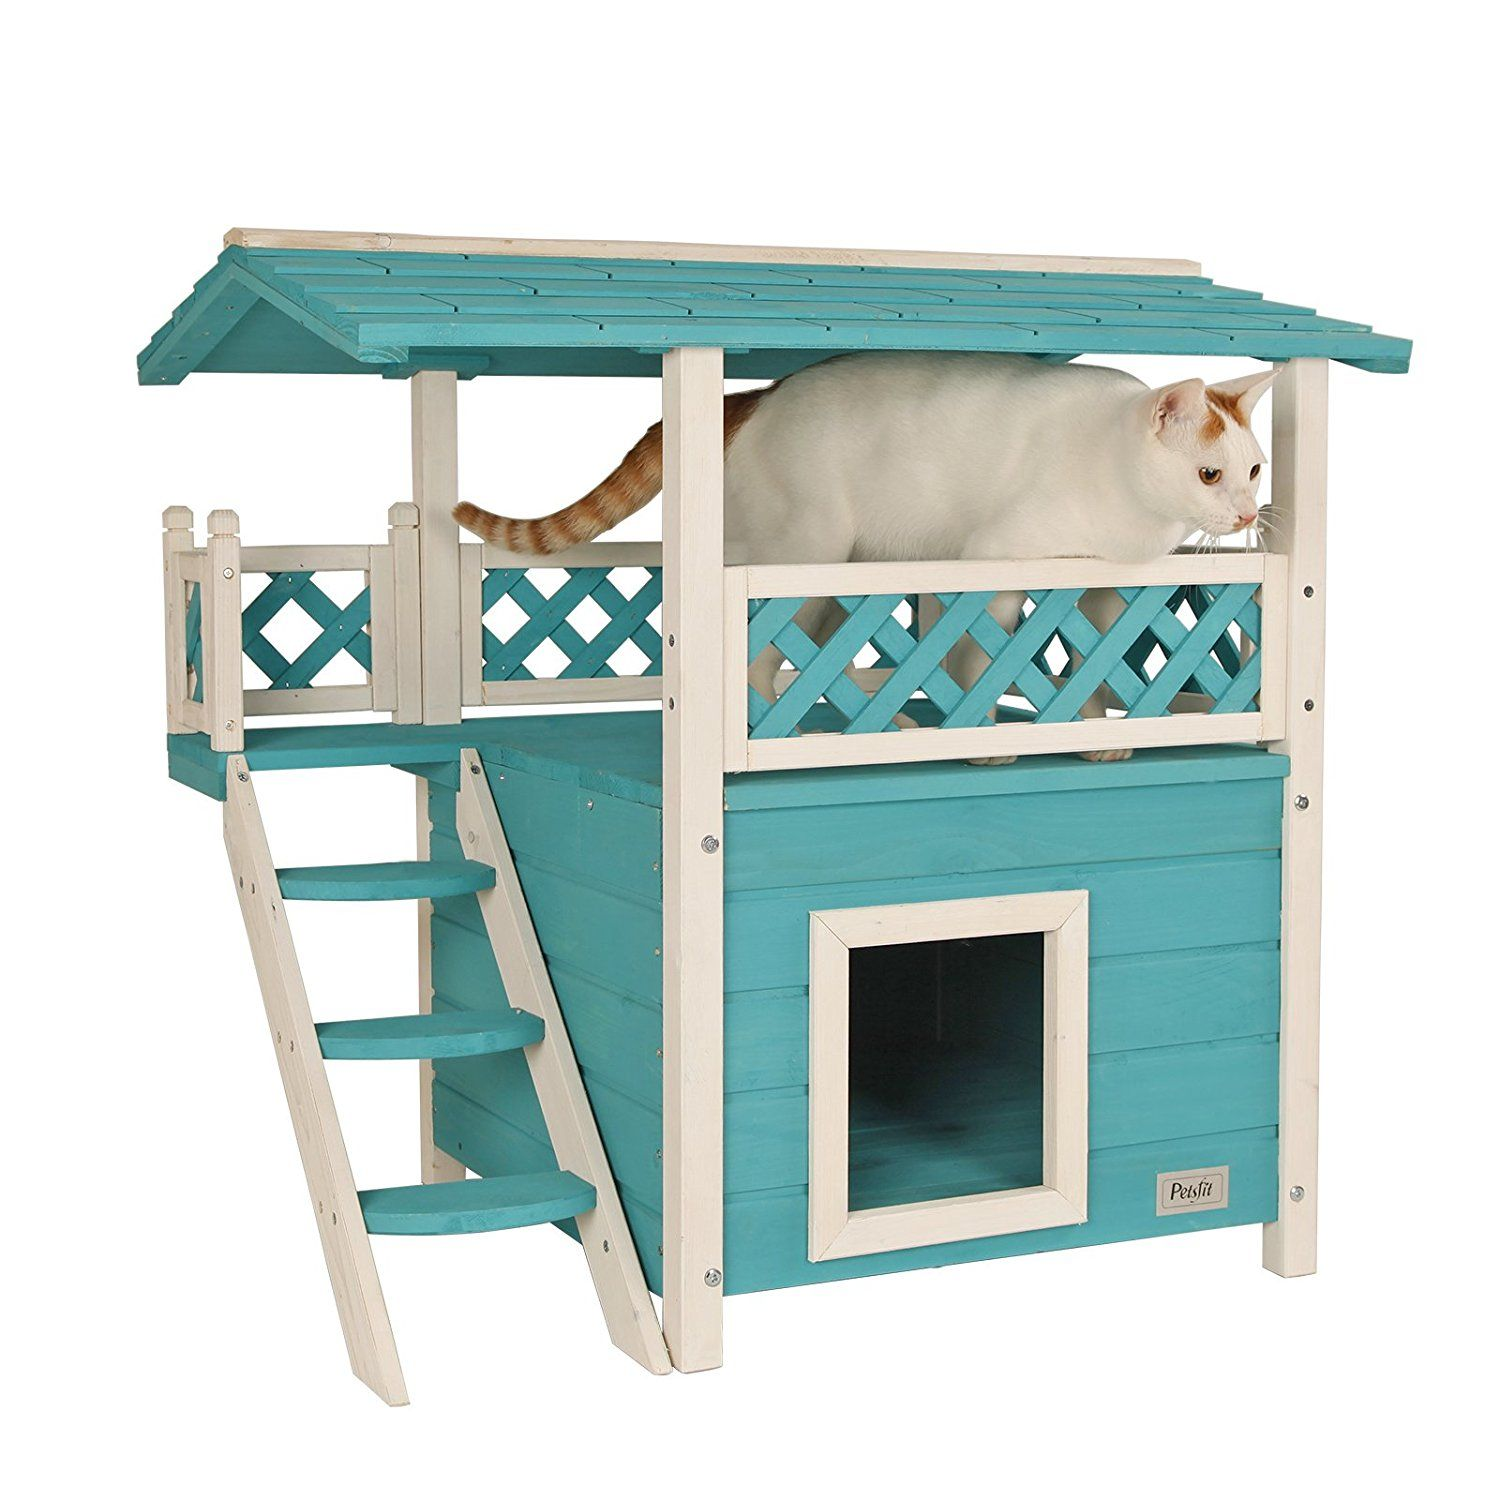 Petsfit Cat House Lodge Indoor Wooden Cat House With Rest Place Double Decker Cat Home Green Color 77cm X 56cm X 73cm Wooden Cat House Wooden Cat Cat House